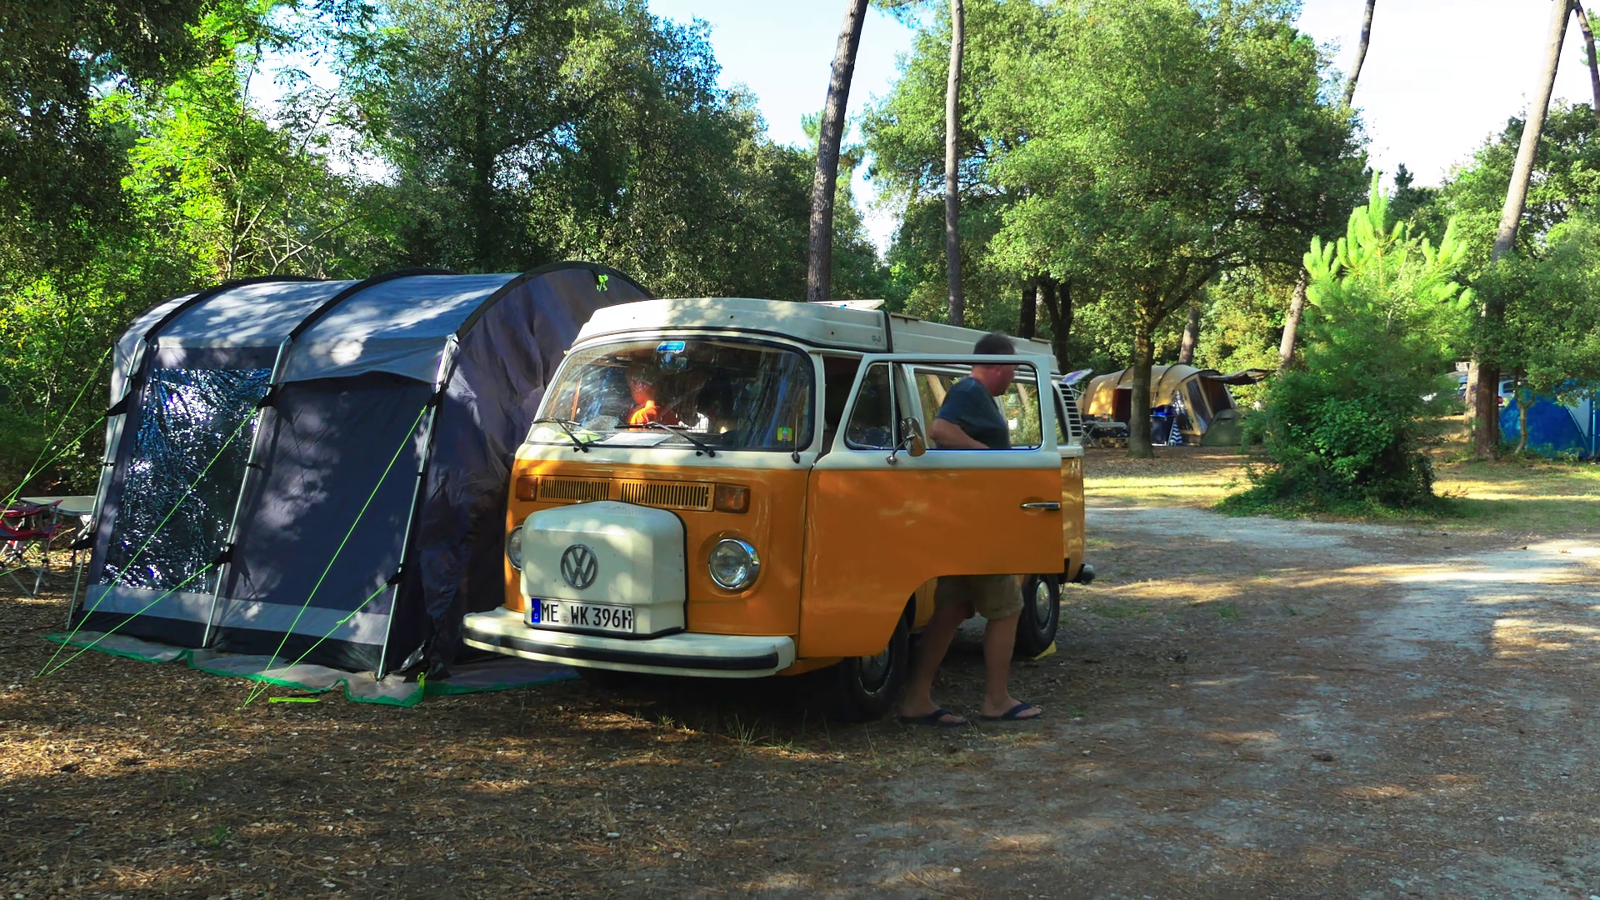 Emplacement - Emplacement Camping Confort - Huttopia Oléron Les Pins